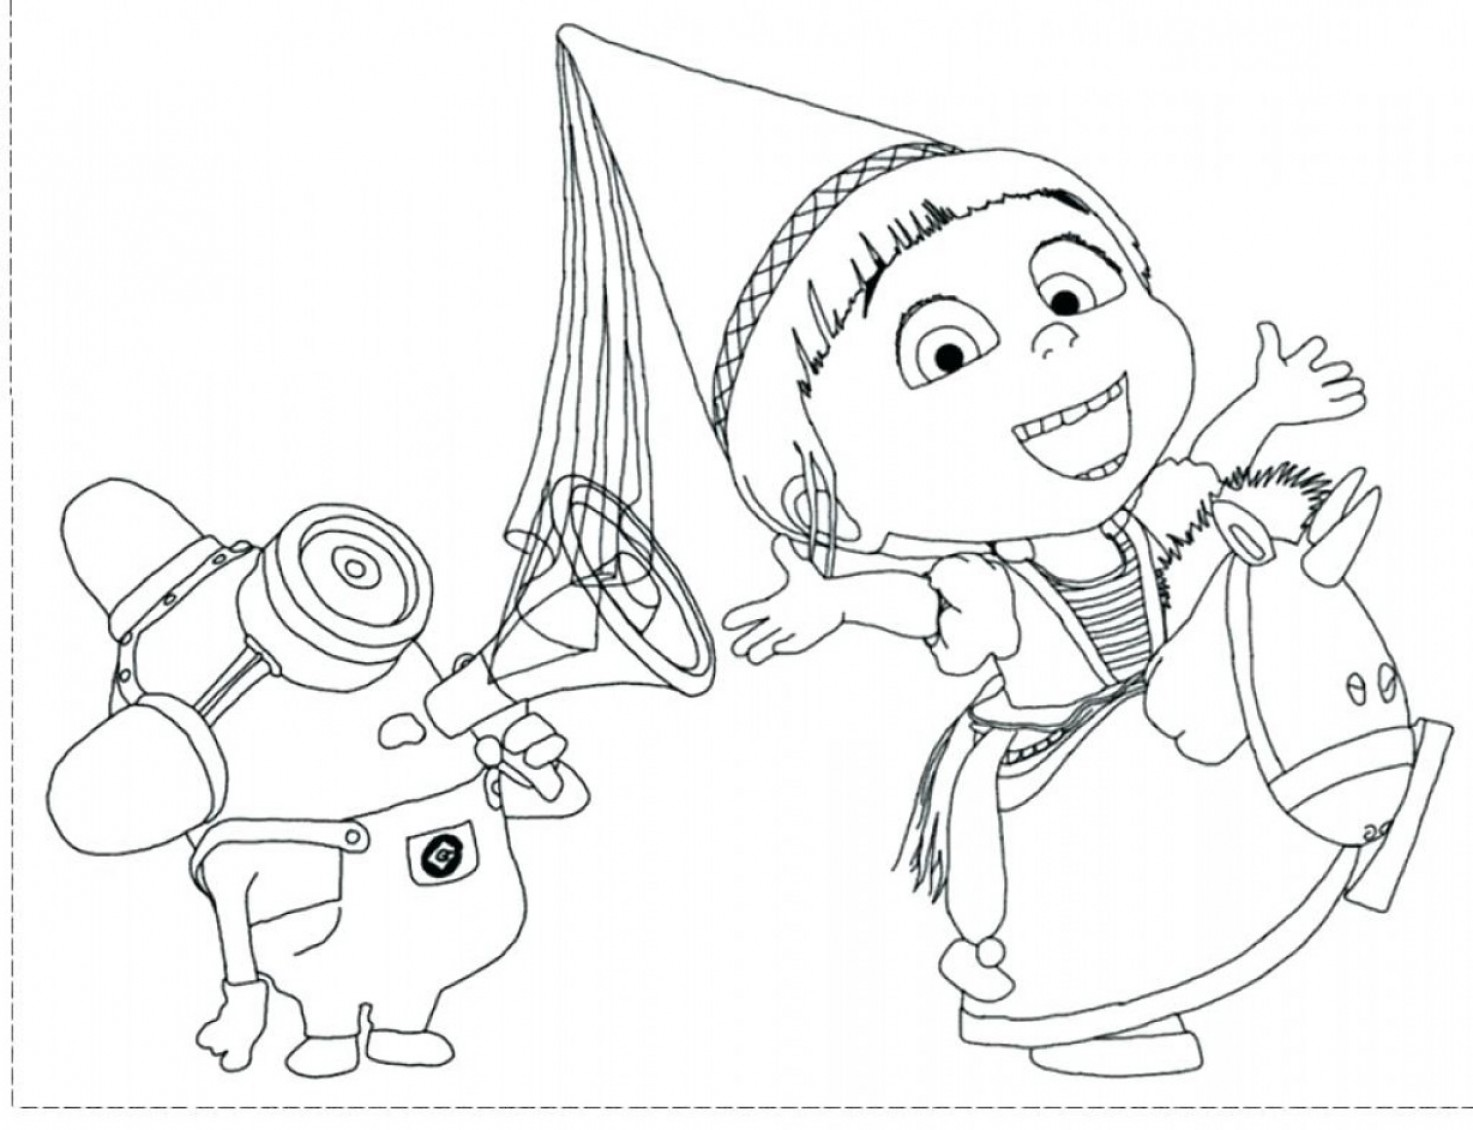 Despicable Me Vector Piranha: Coloring Pages Minions Google Despicable Me Of Vector